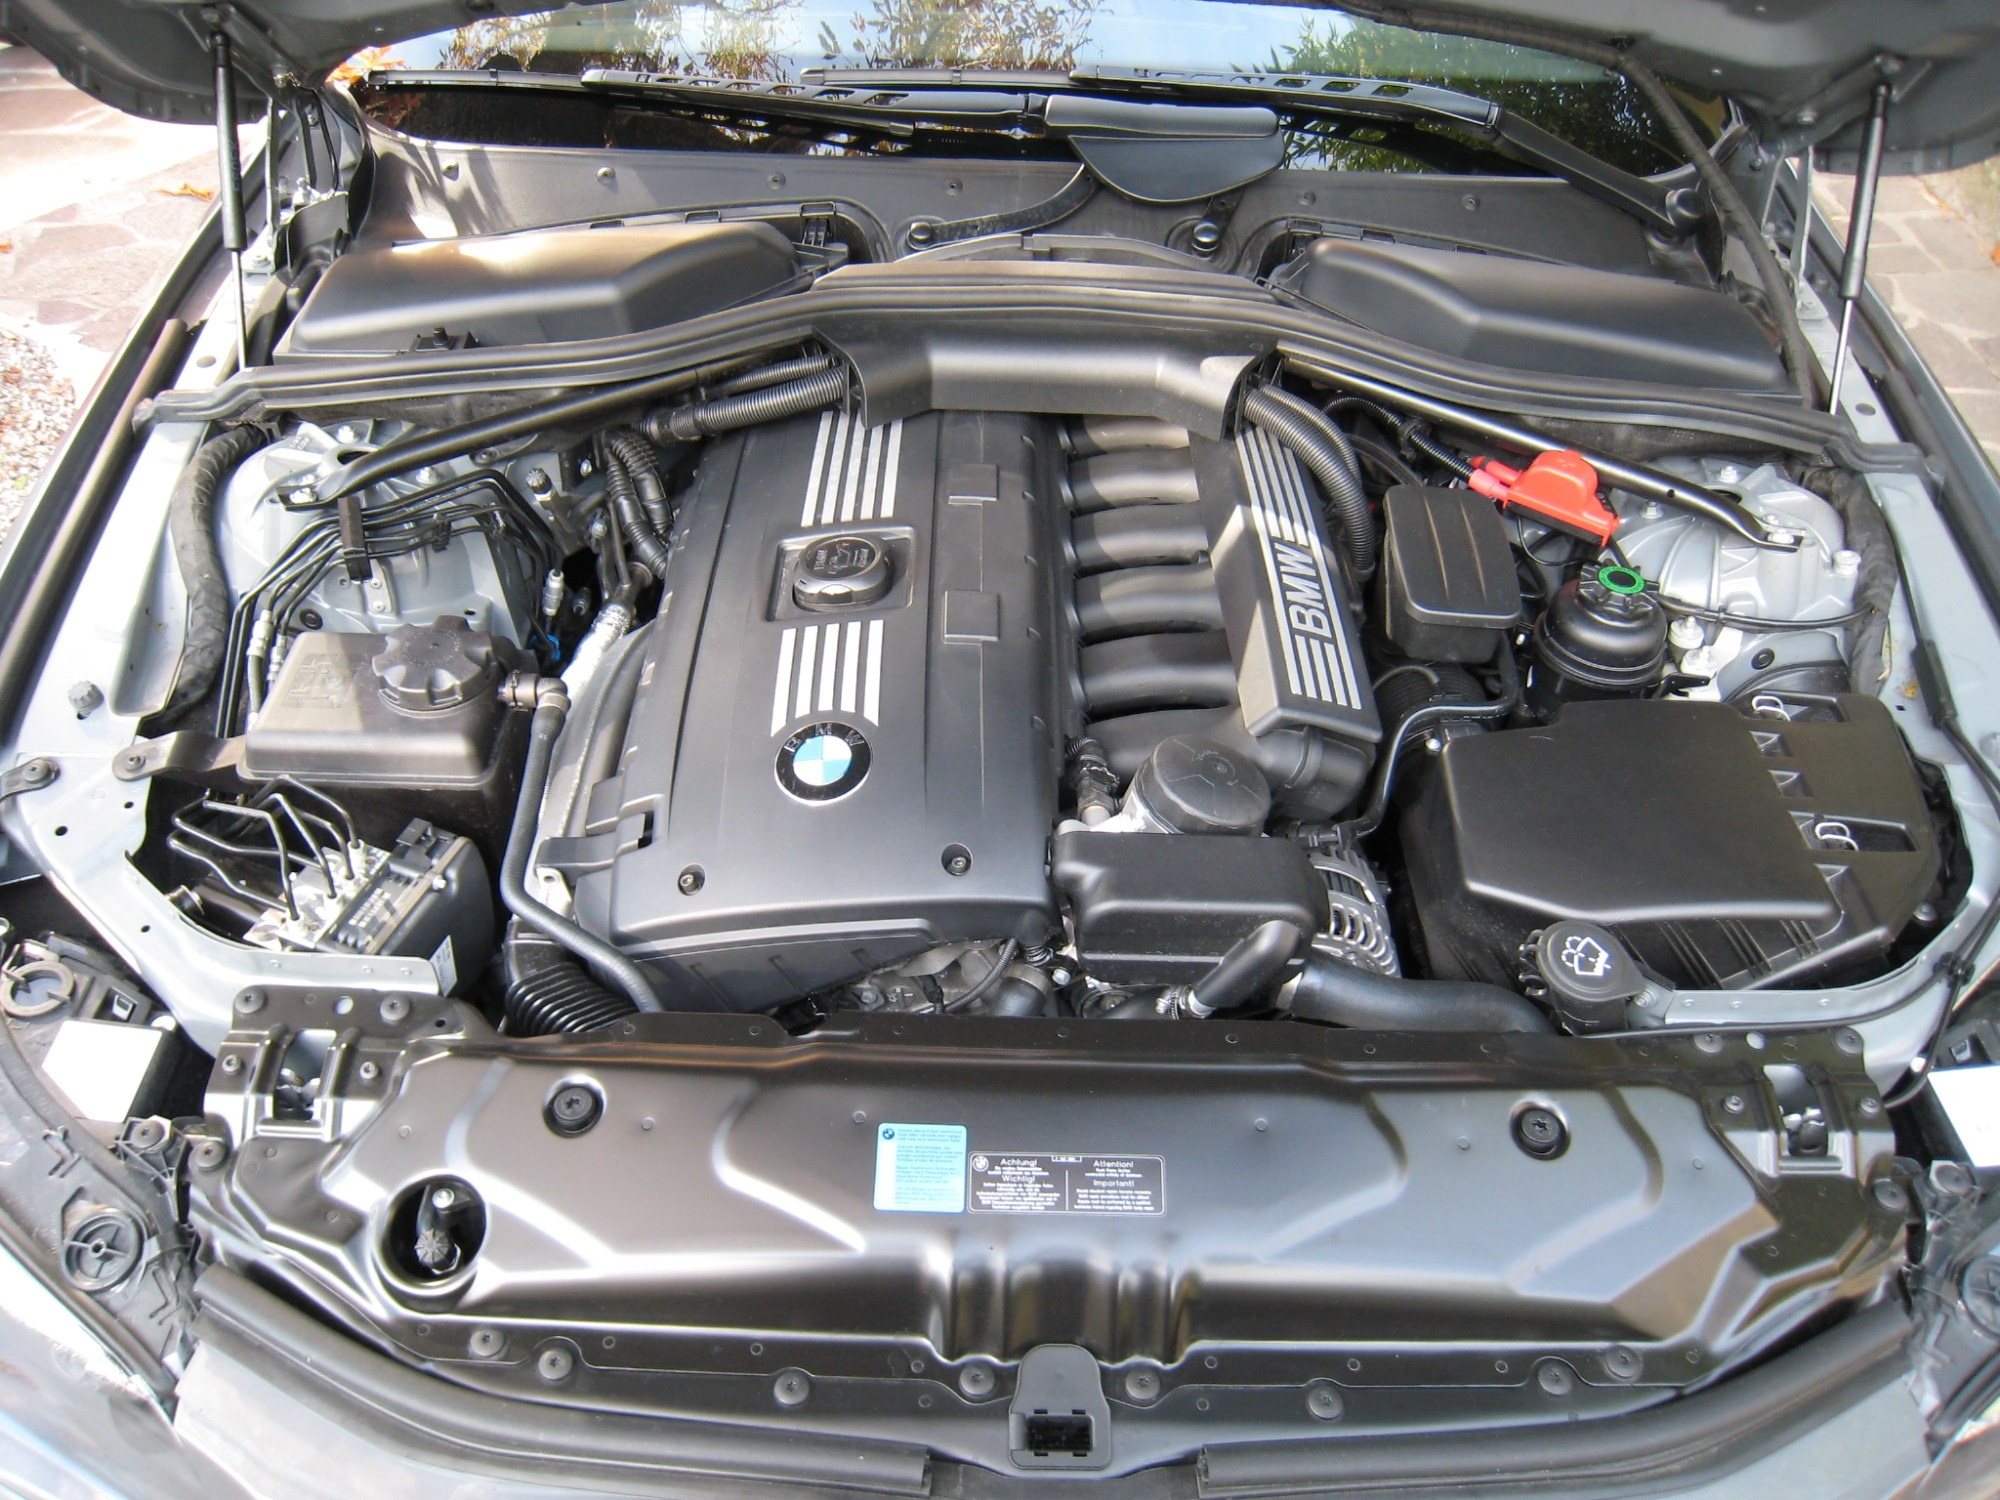 hight resolution of 2009 535i engine diagram wiring diagram repair guides 2009 bmw 528i engine diagram 2009 bmw 535i engine diagram